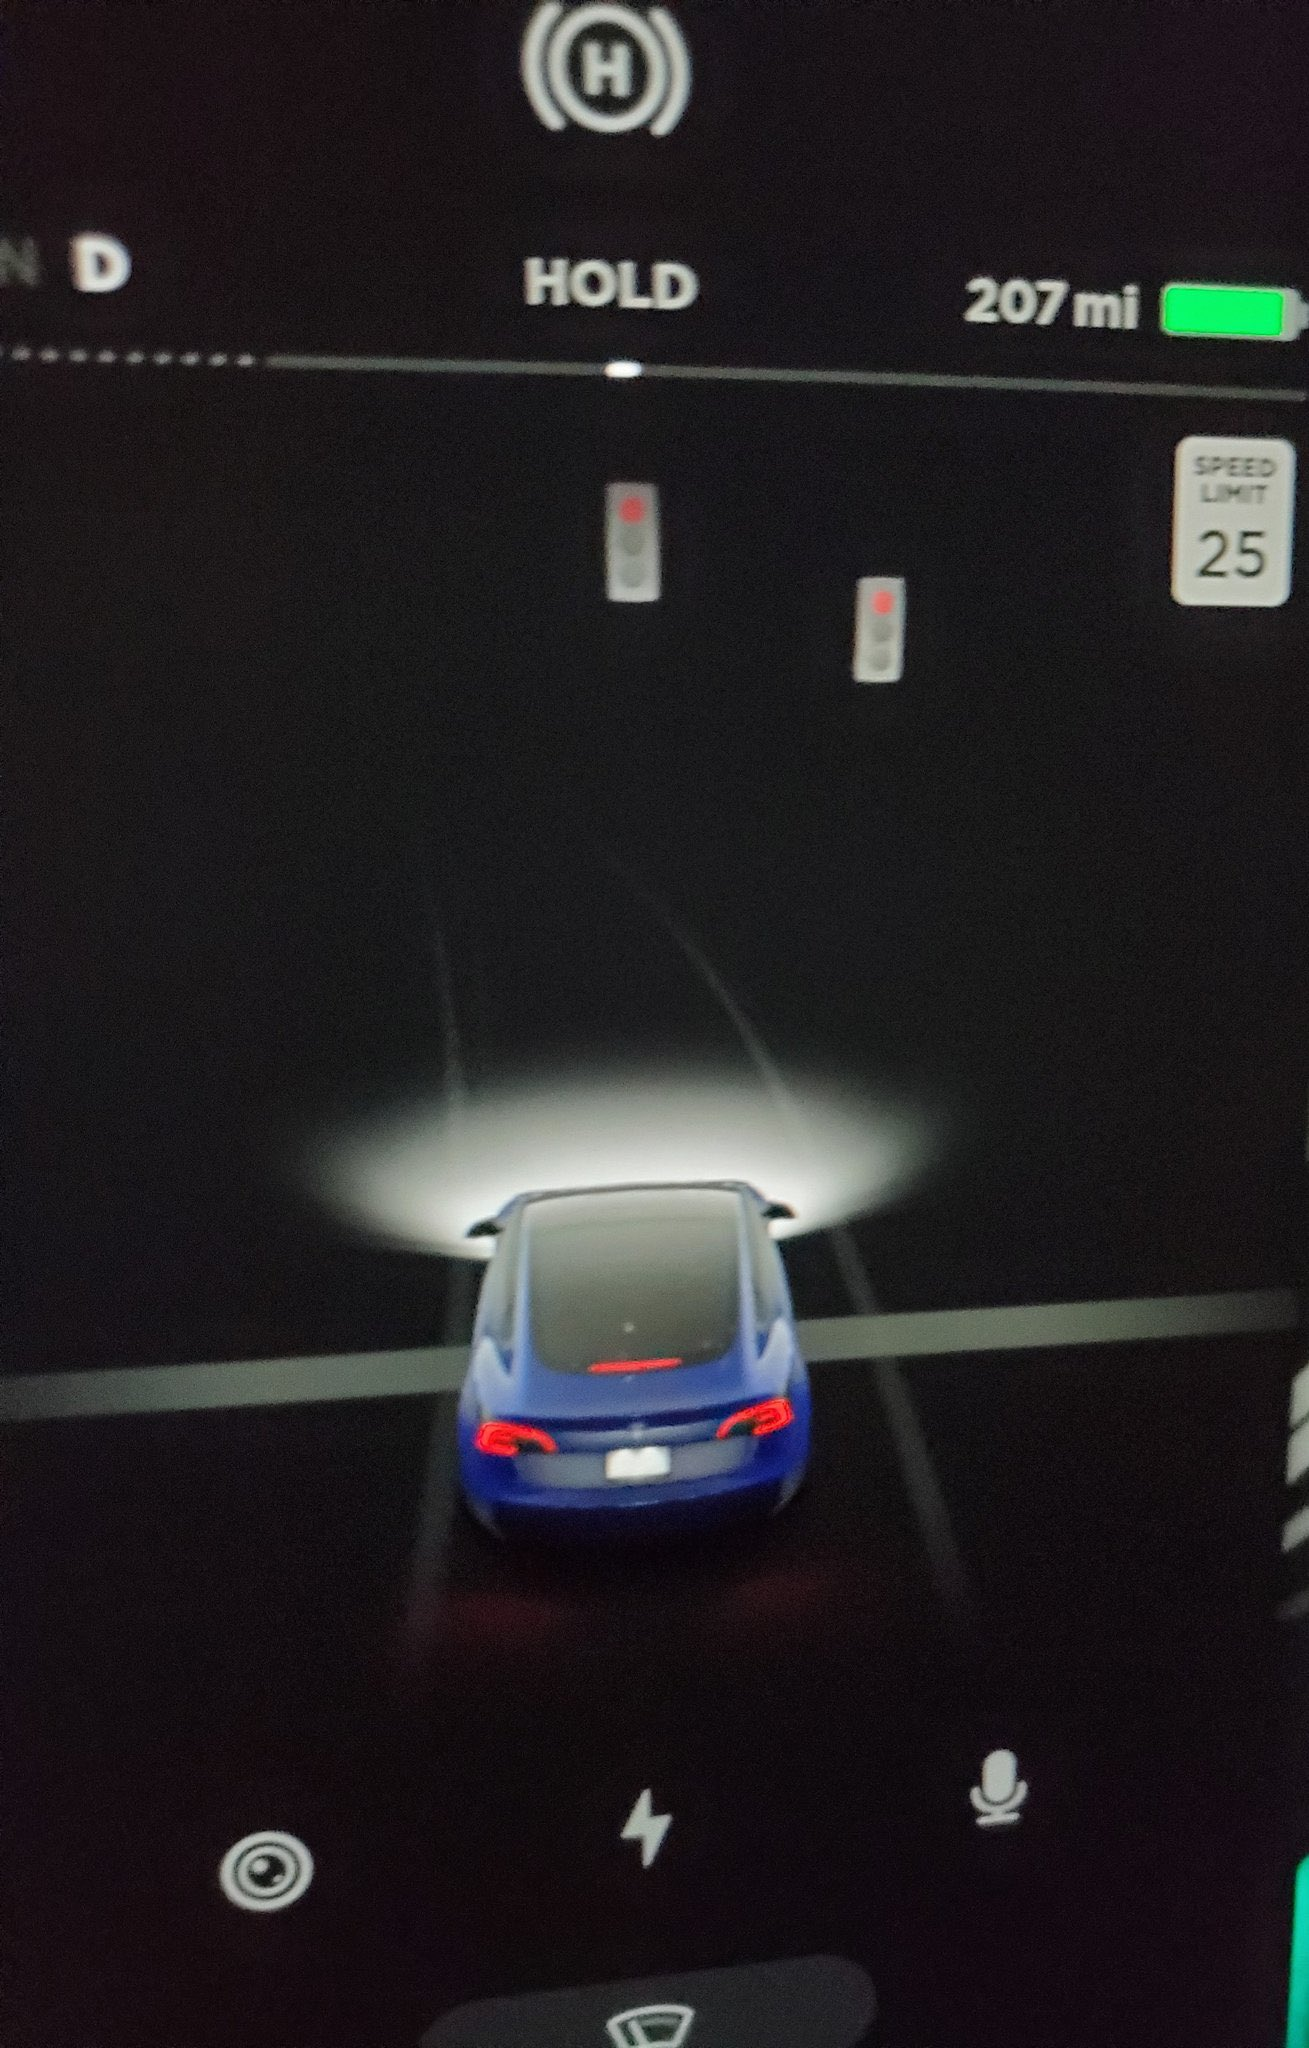 New driving visualizations